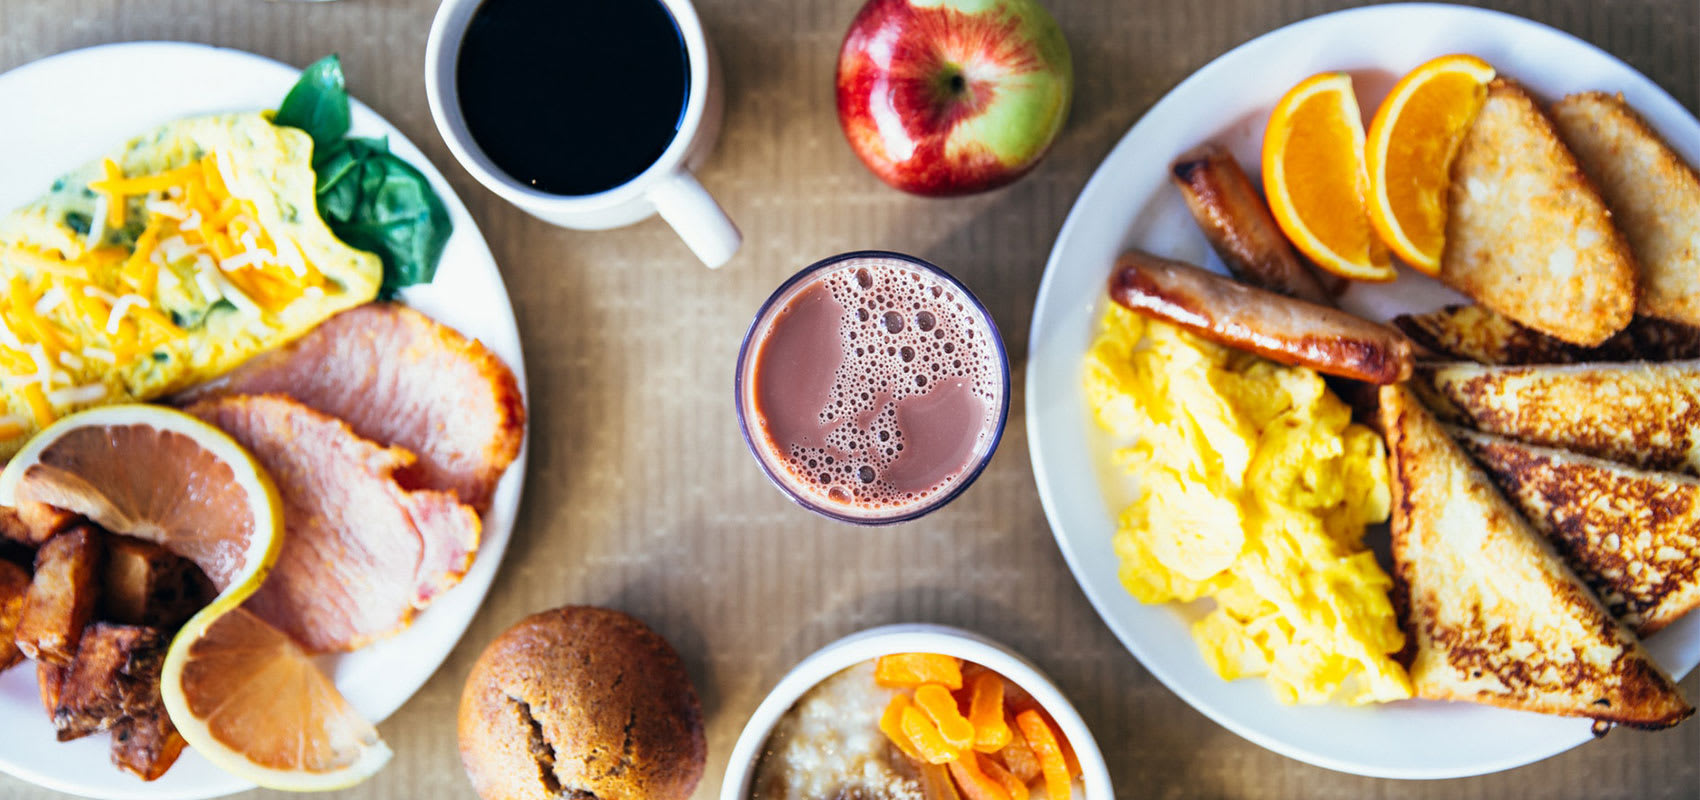 These 7 Park City Restaurants are Open for Breakfast on New Year's Day Image